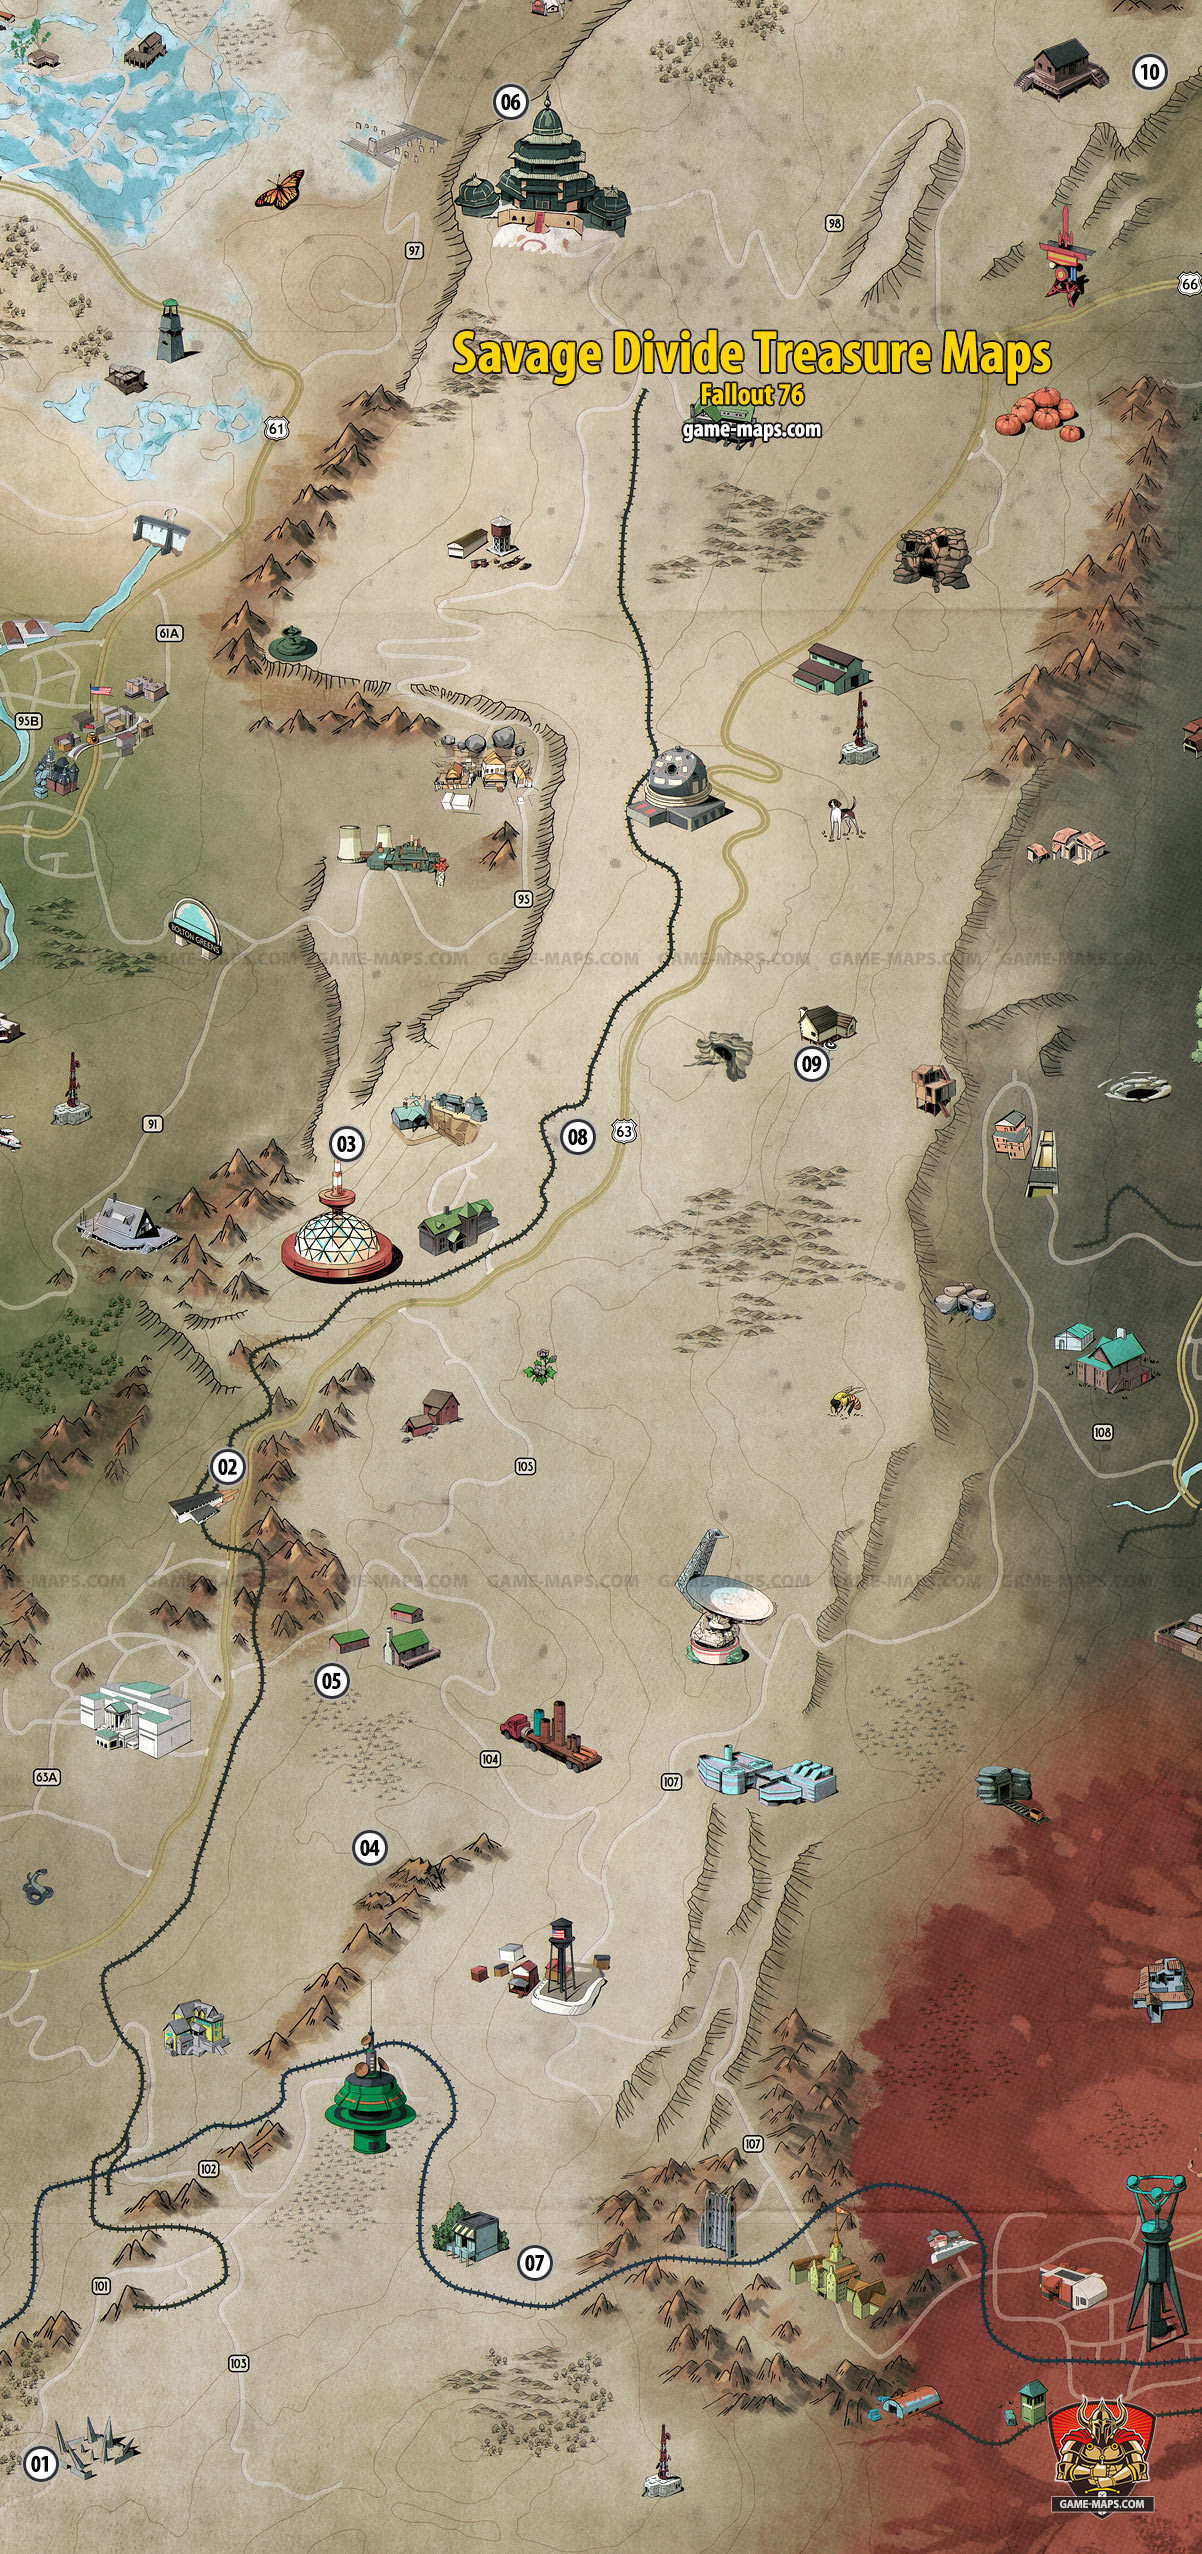 Fallout 76 Savage Divide Treasure Map 3 : fallout, savage, divide, treasure, Savage, Divide, Treasure, Fallout, Game-maps.com